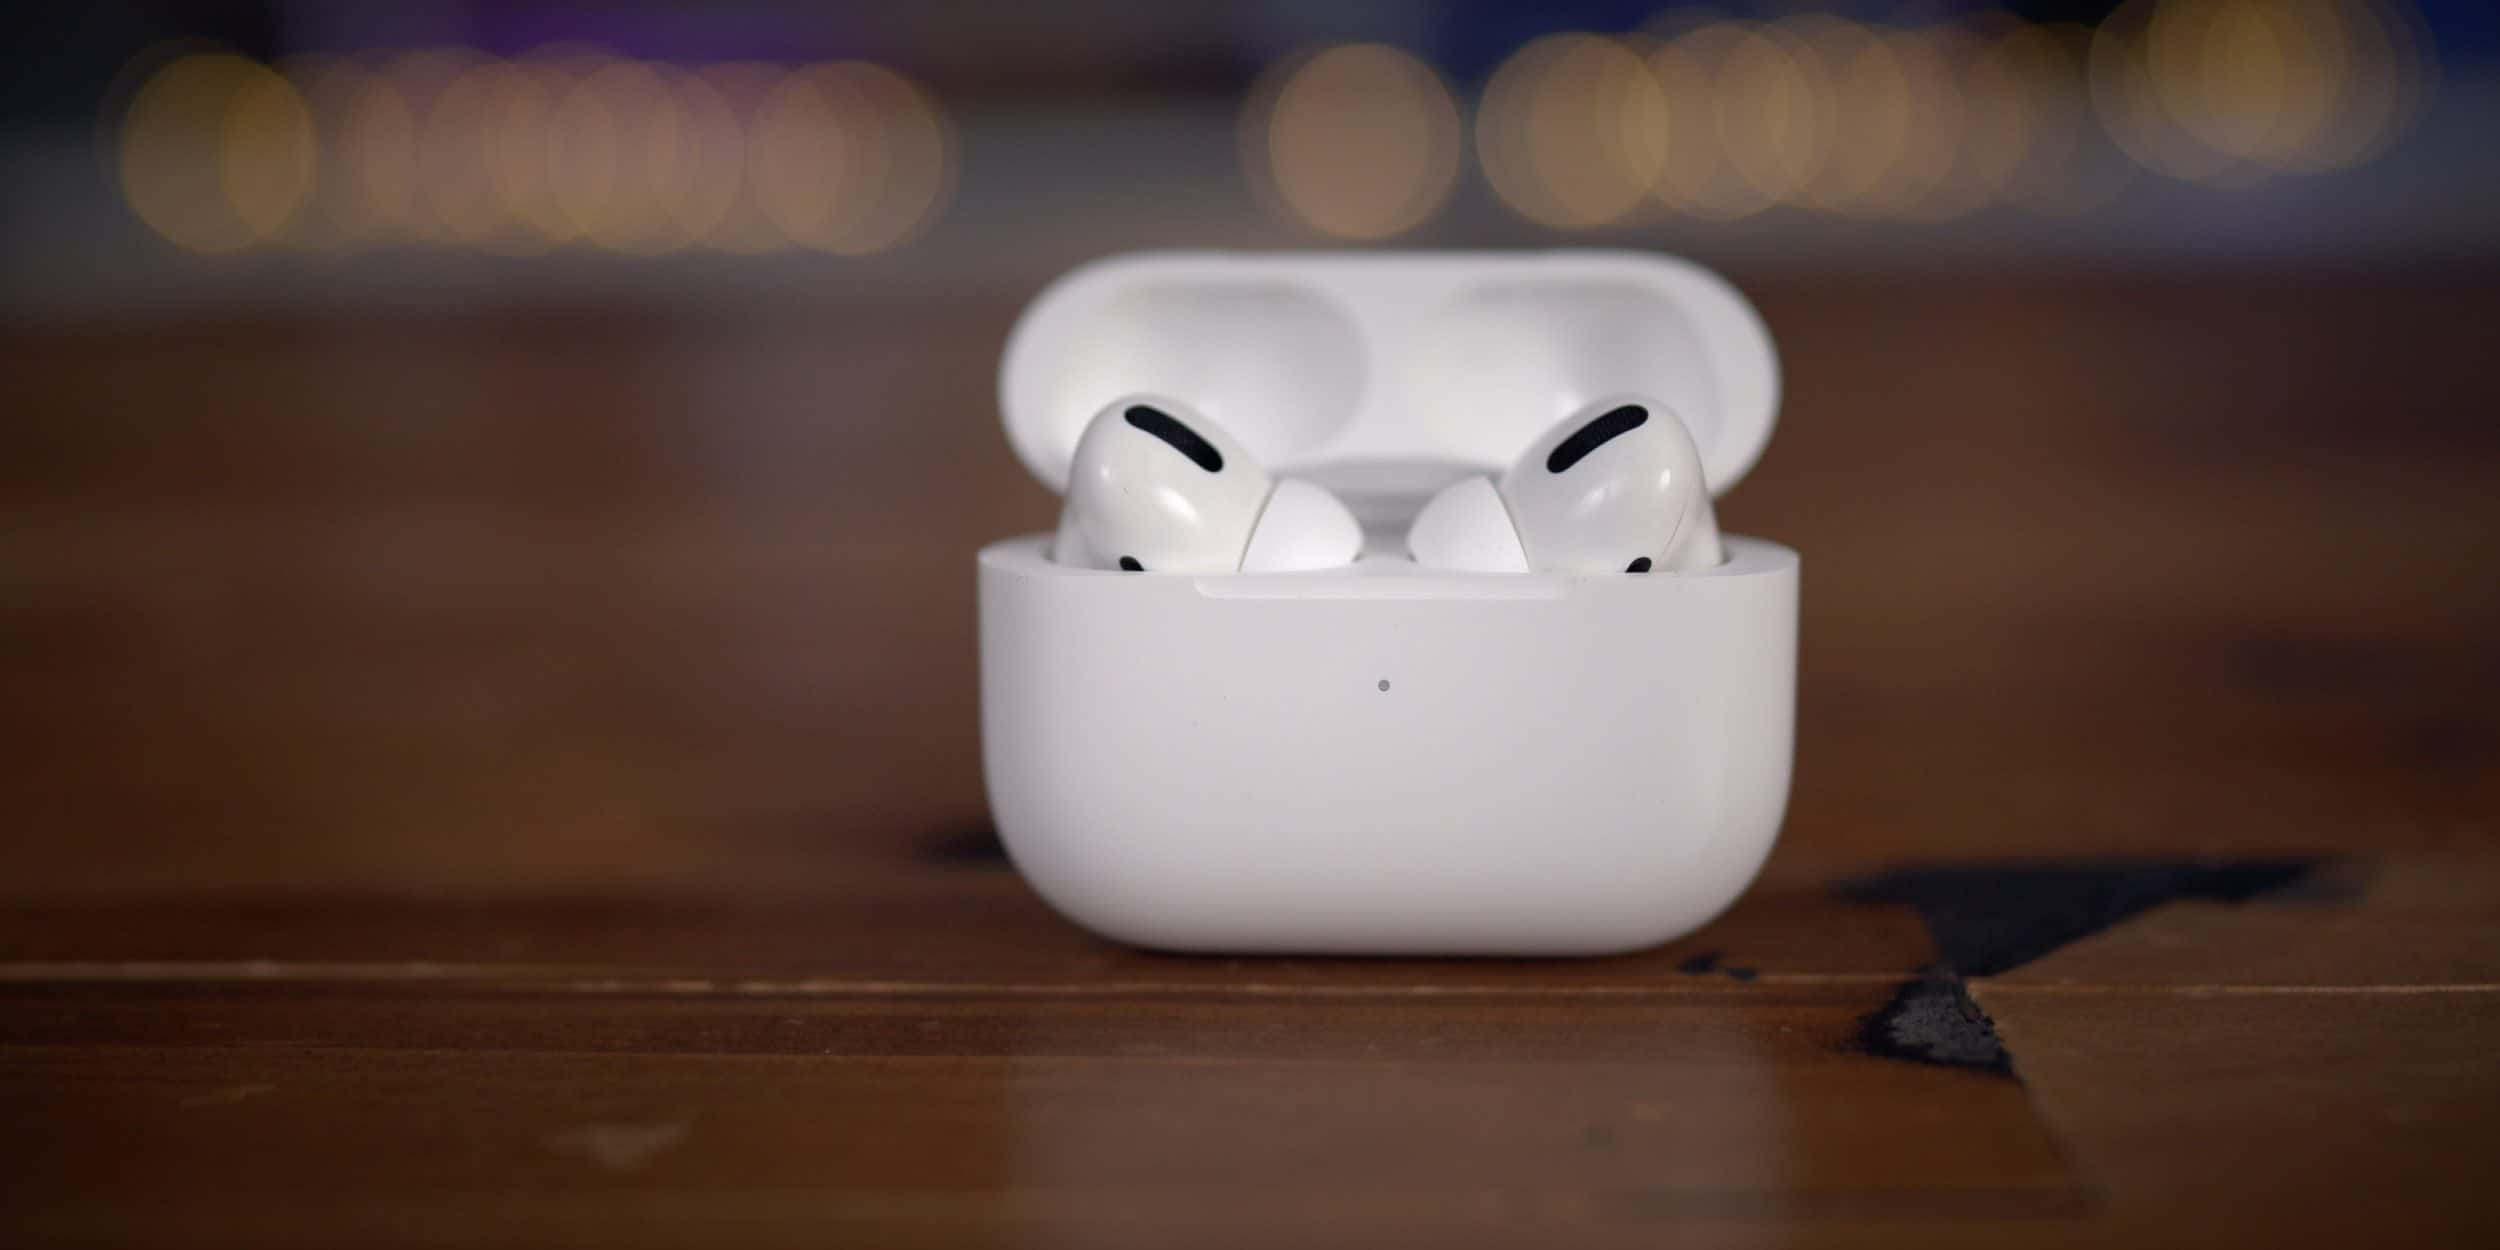 AirPods Shipment May Reach 60 Million Because of AirPods Pro